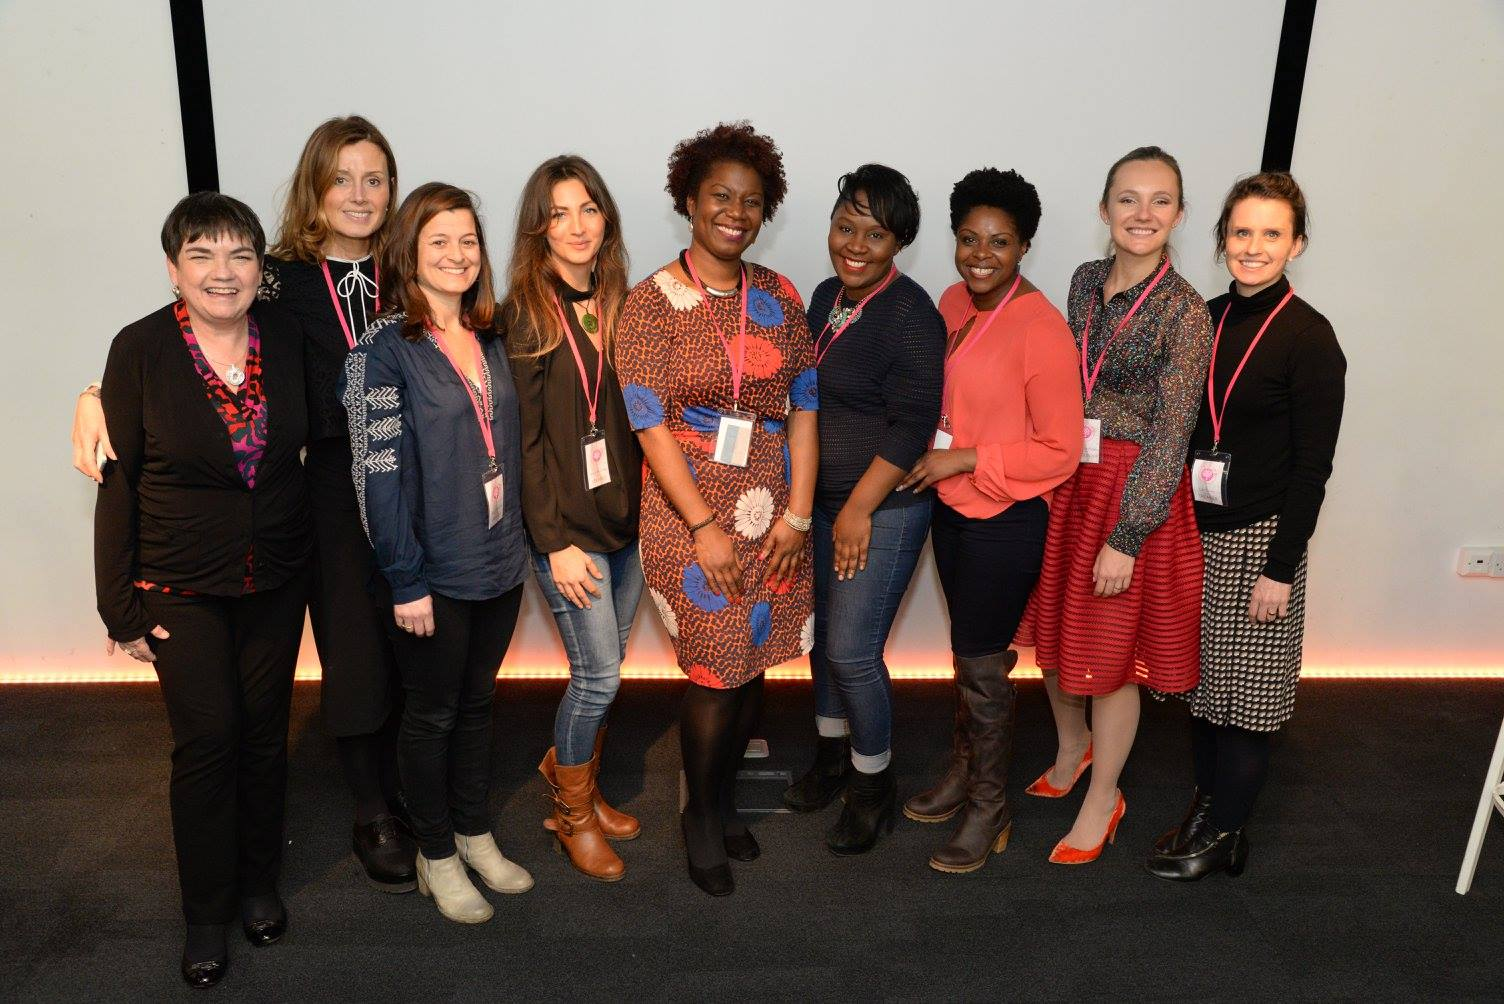 Speakers at the Women's Wellbeing Conference. London, January 2016